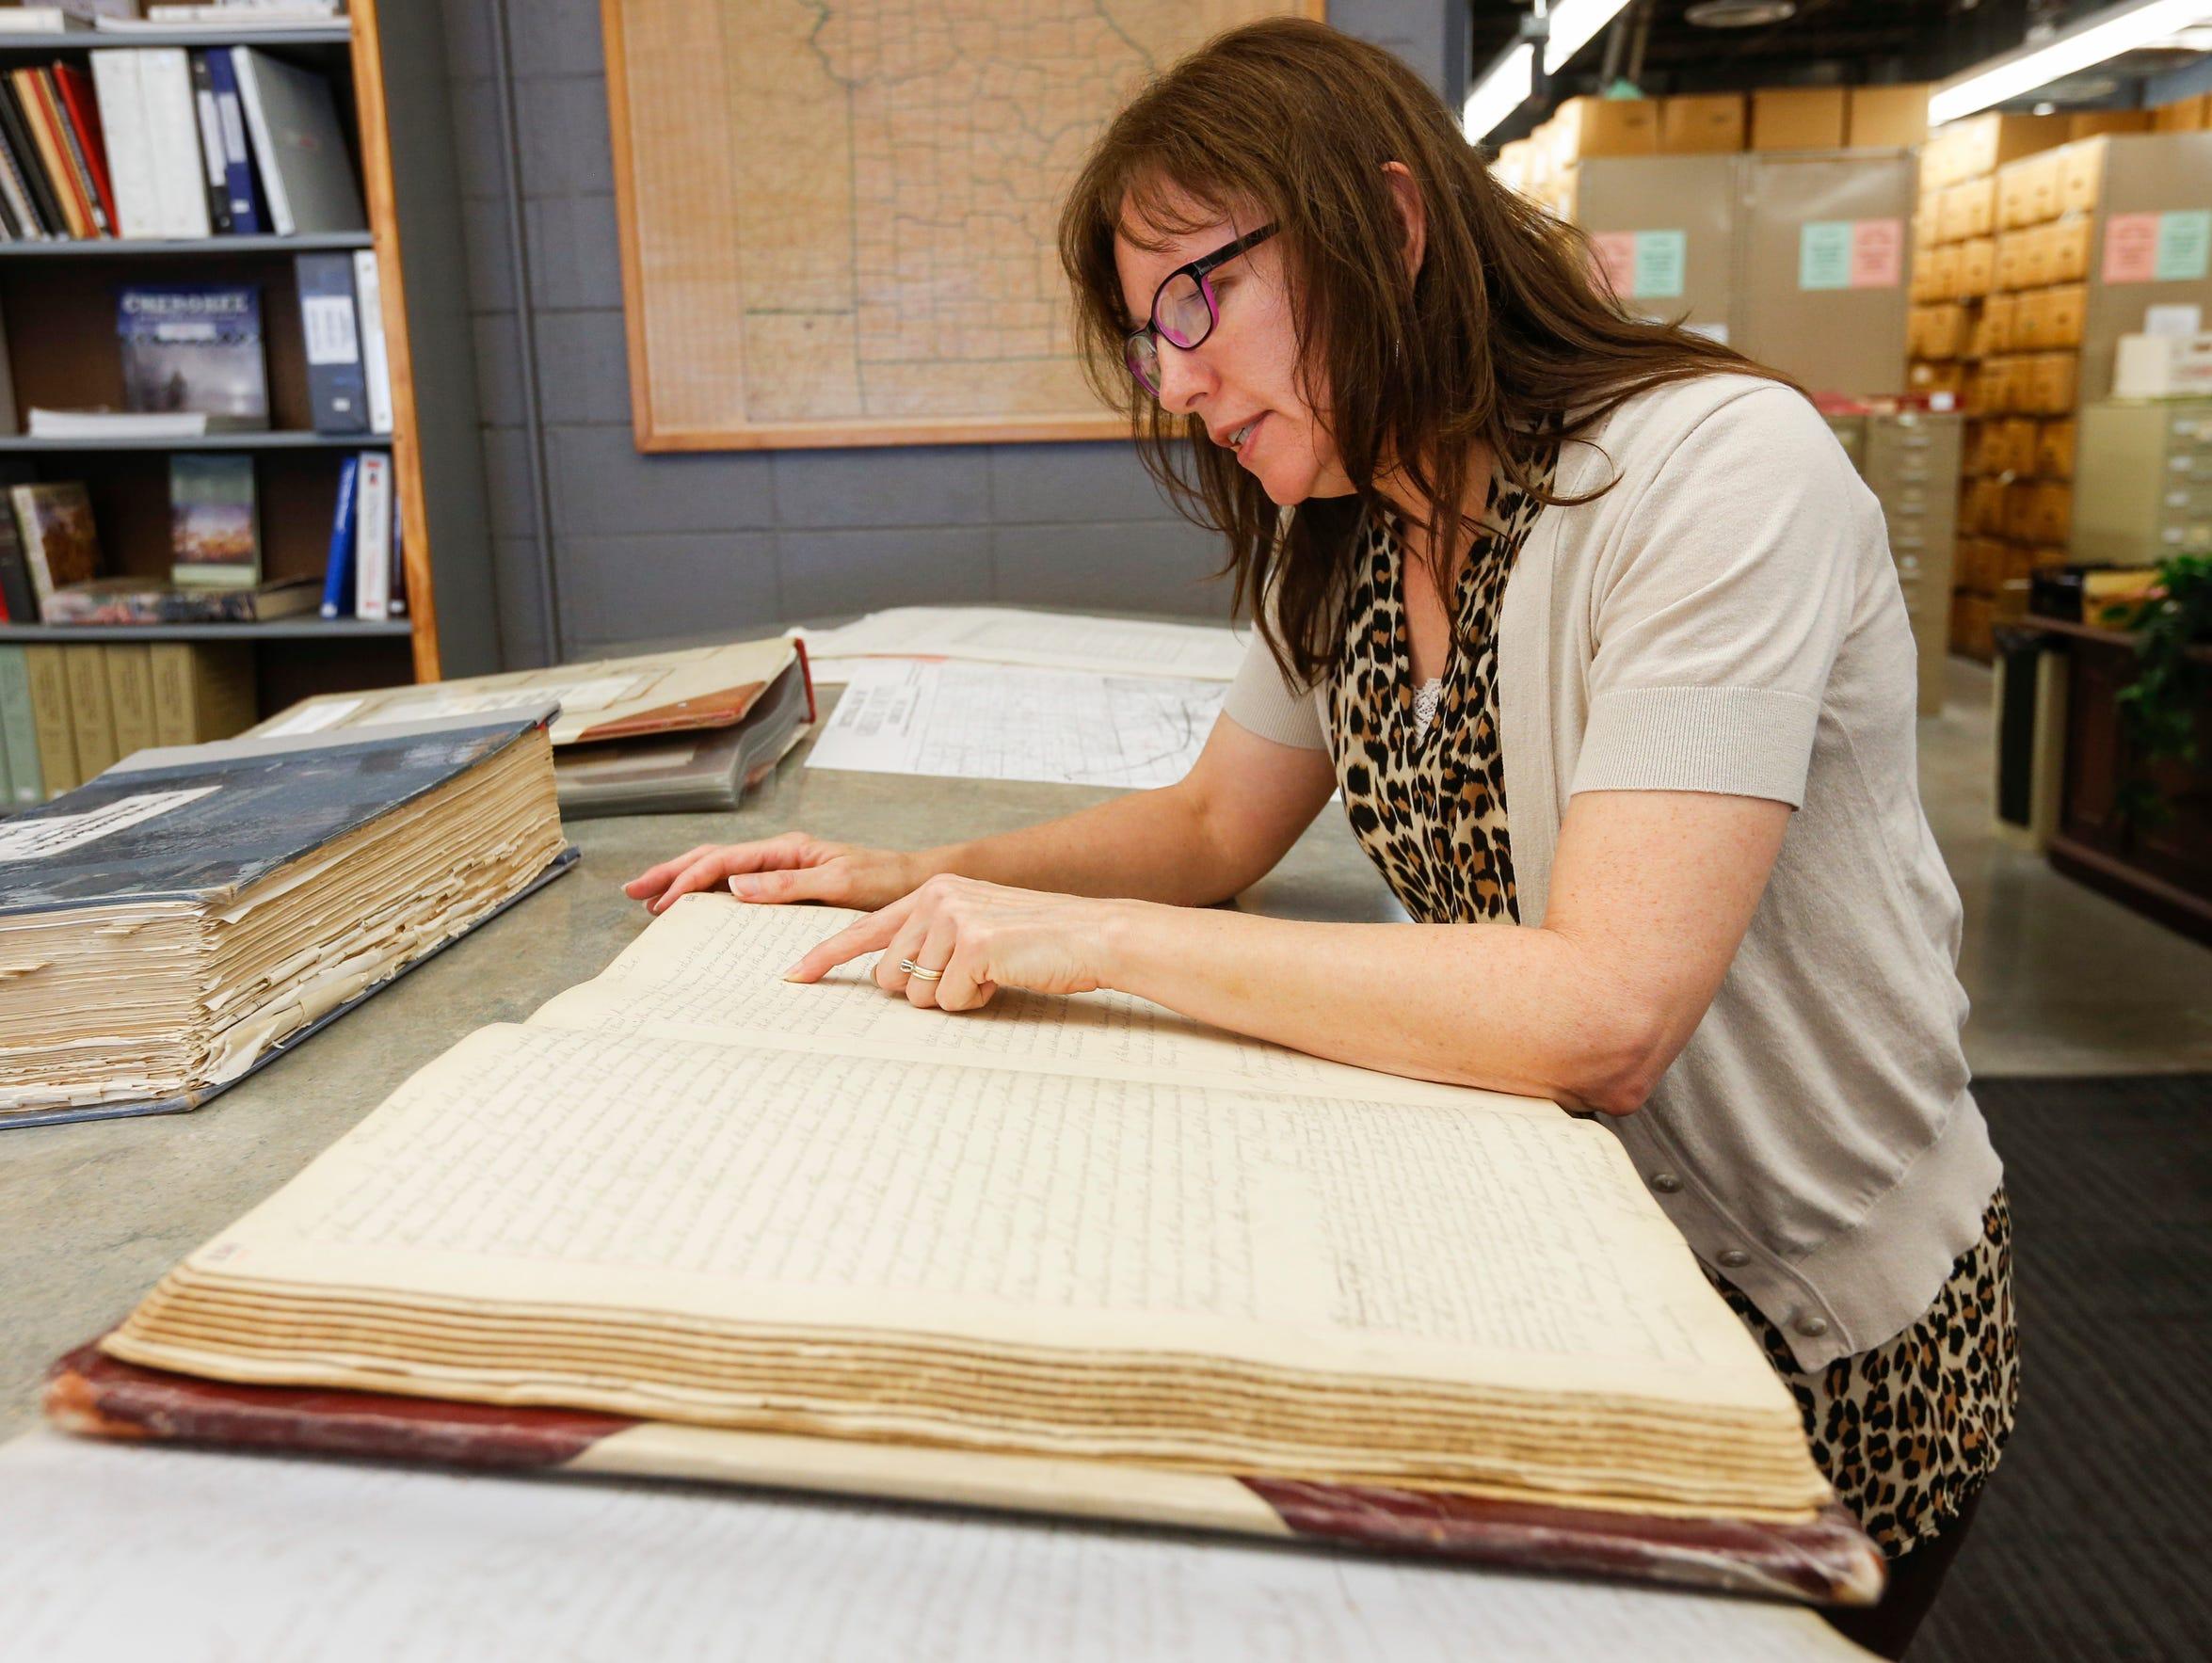 Archivist Connie Yen looks through documents while